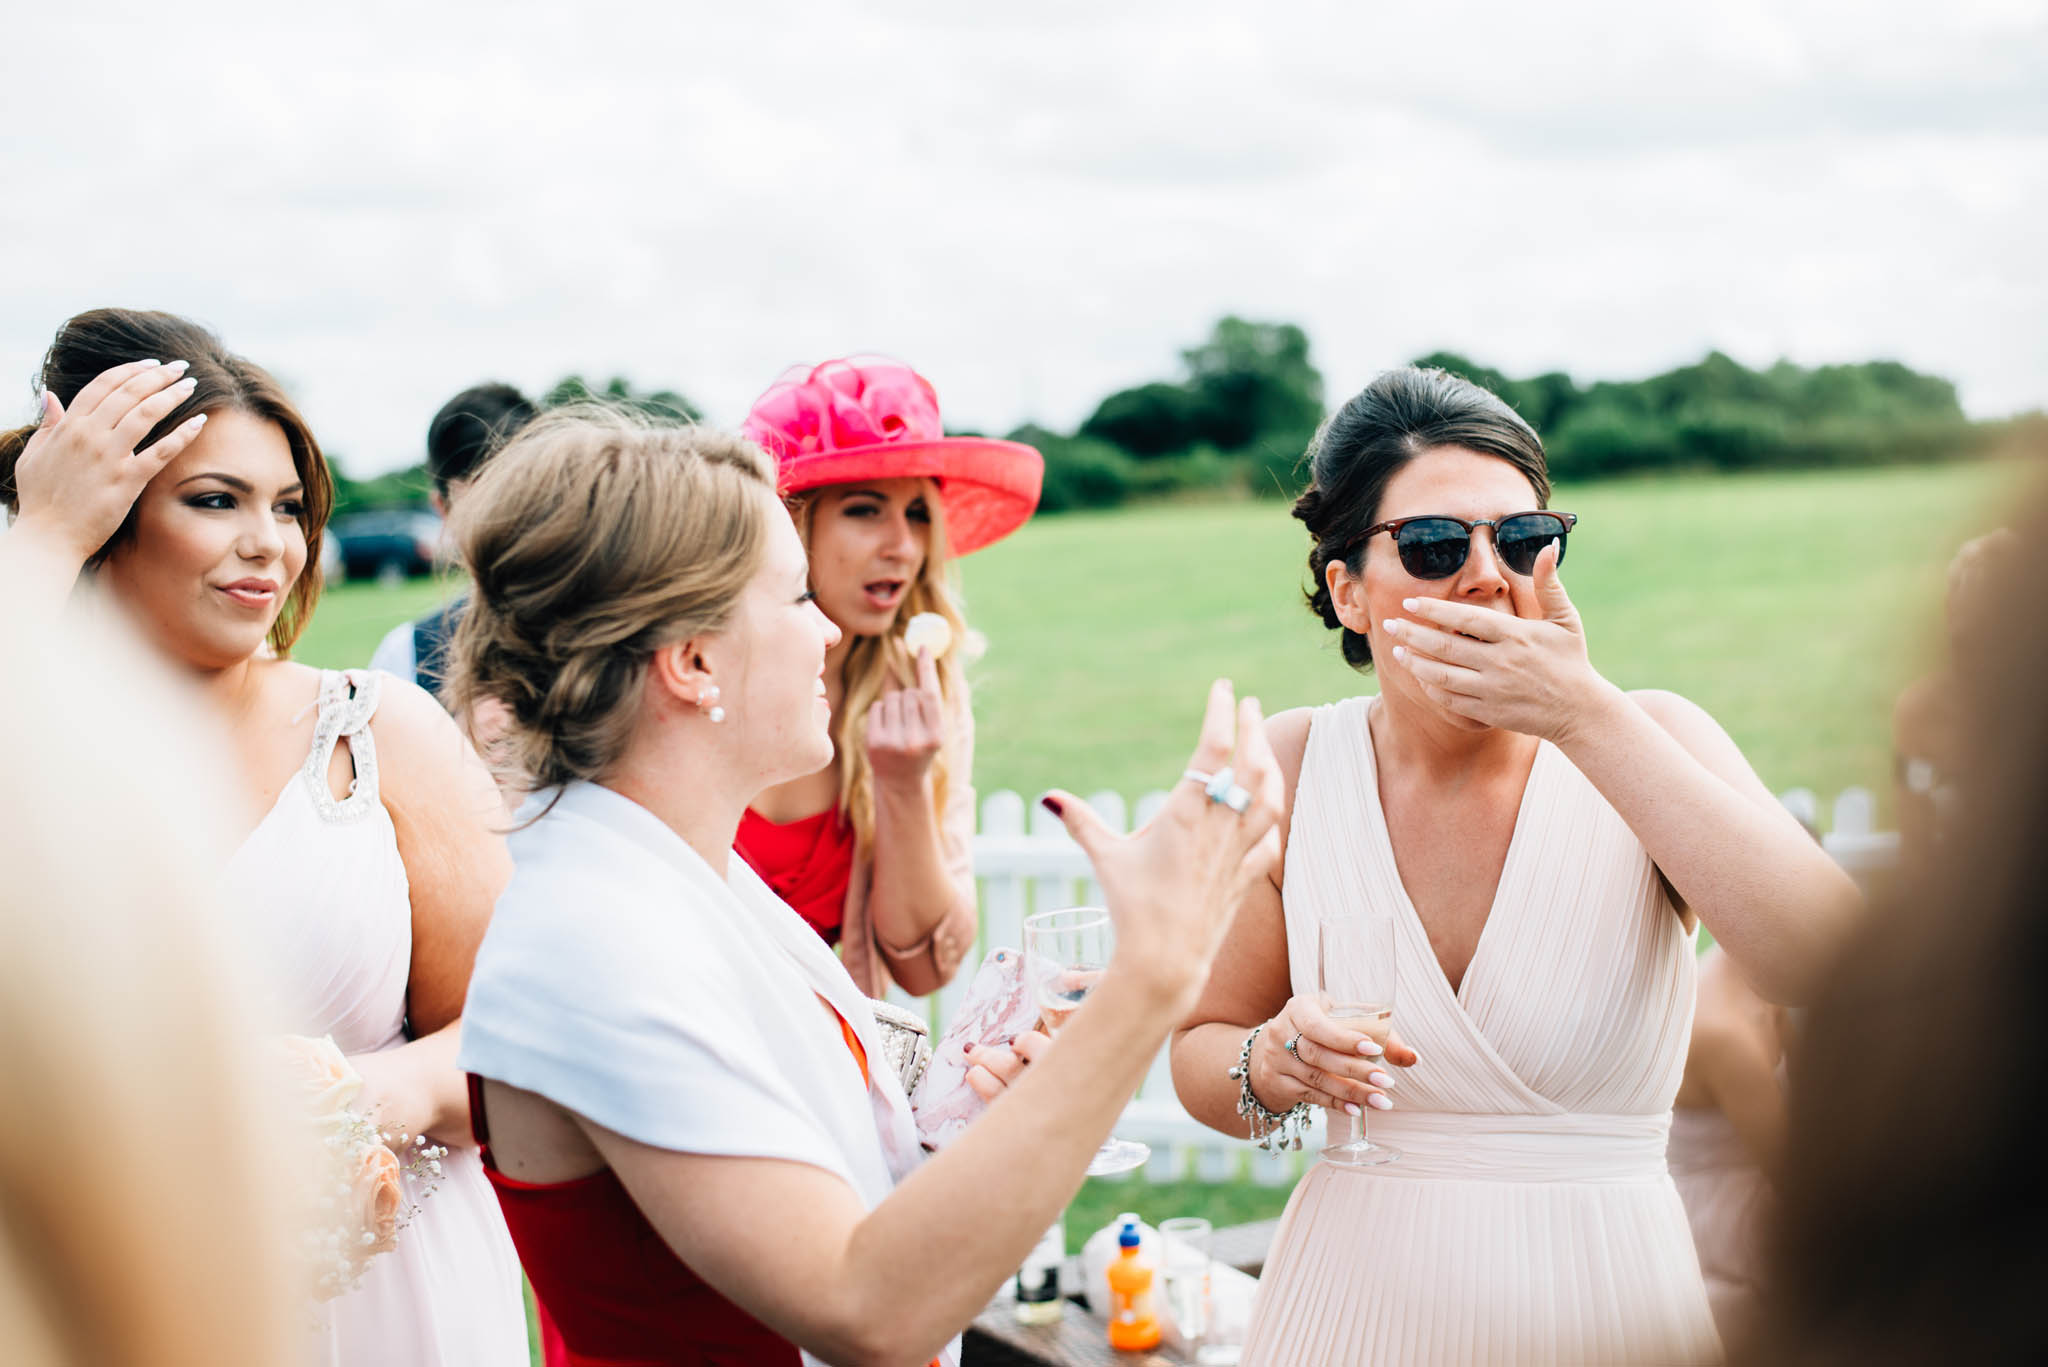 eating-wedding-blog-scott-stockwell-photography-end-2017.jpg